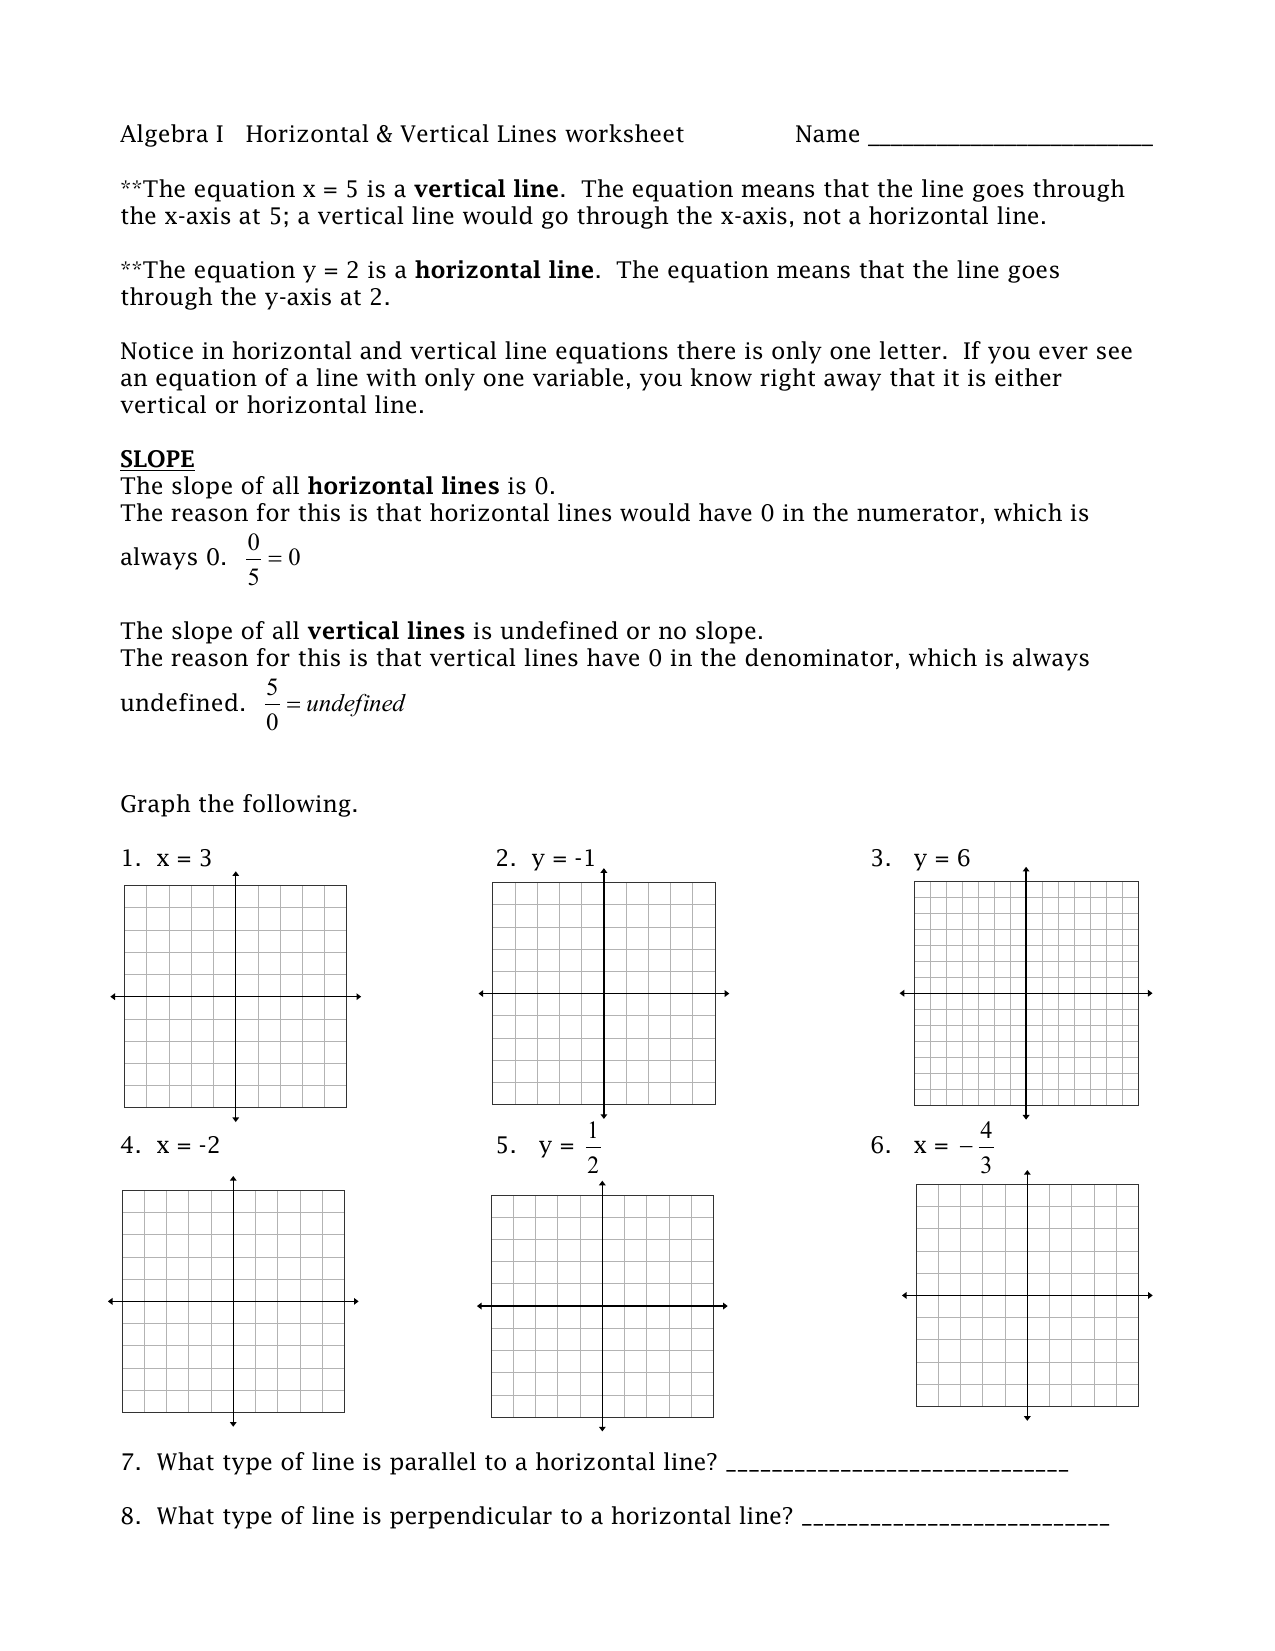 Graphing Horizontal and Vertical Lines Worksheet | Problems ...